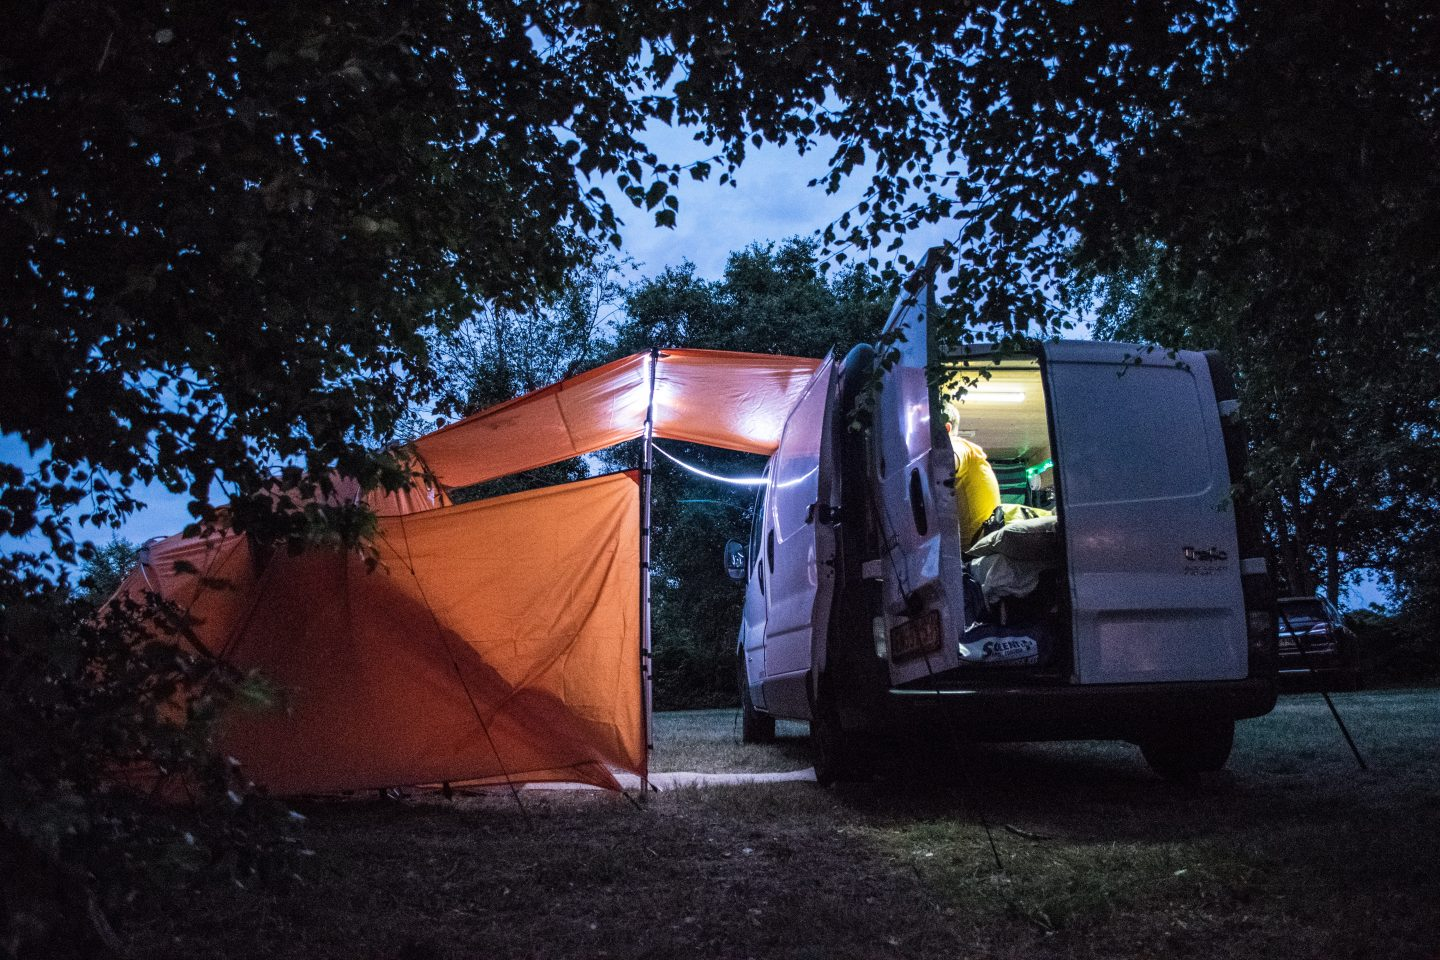 evenings in our campervan